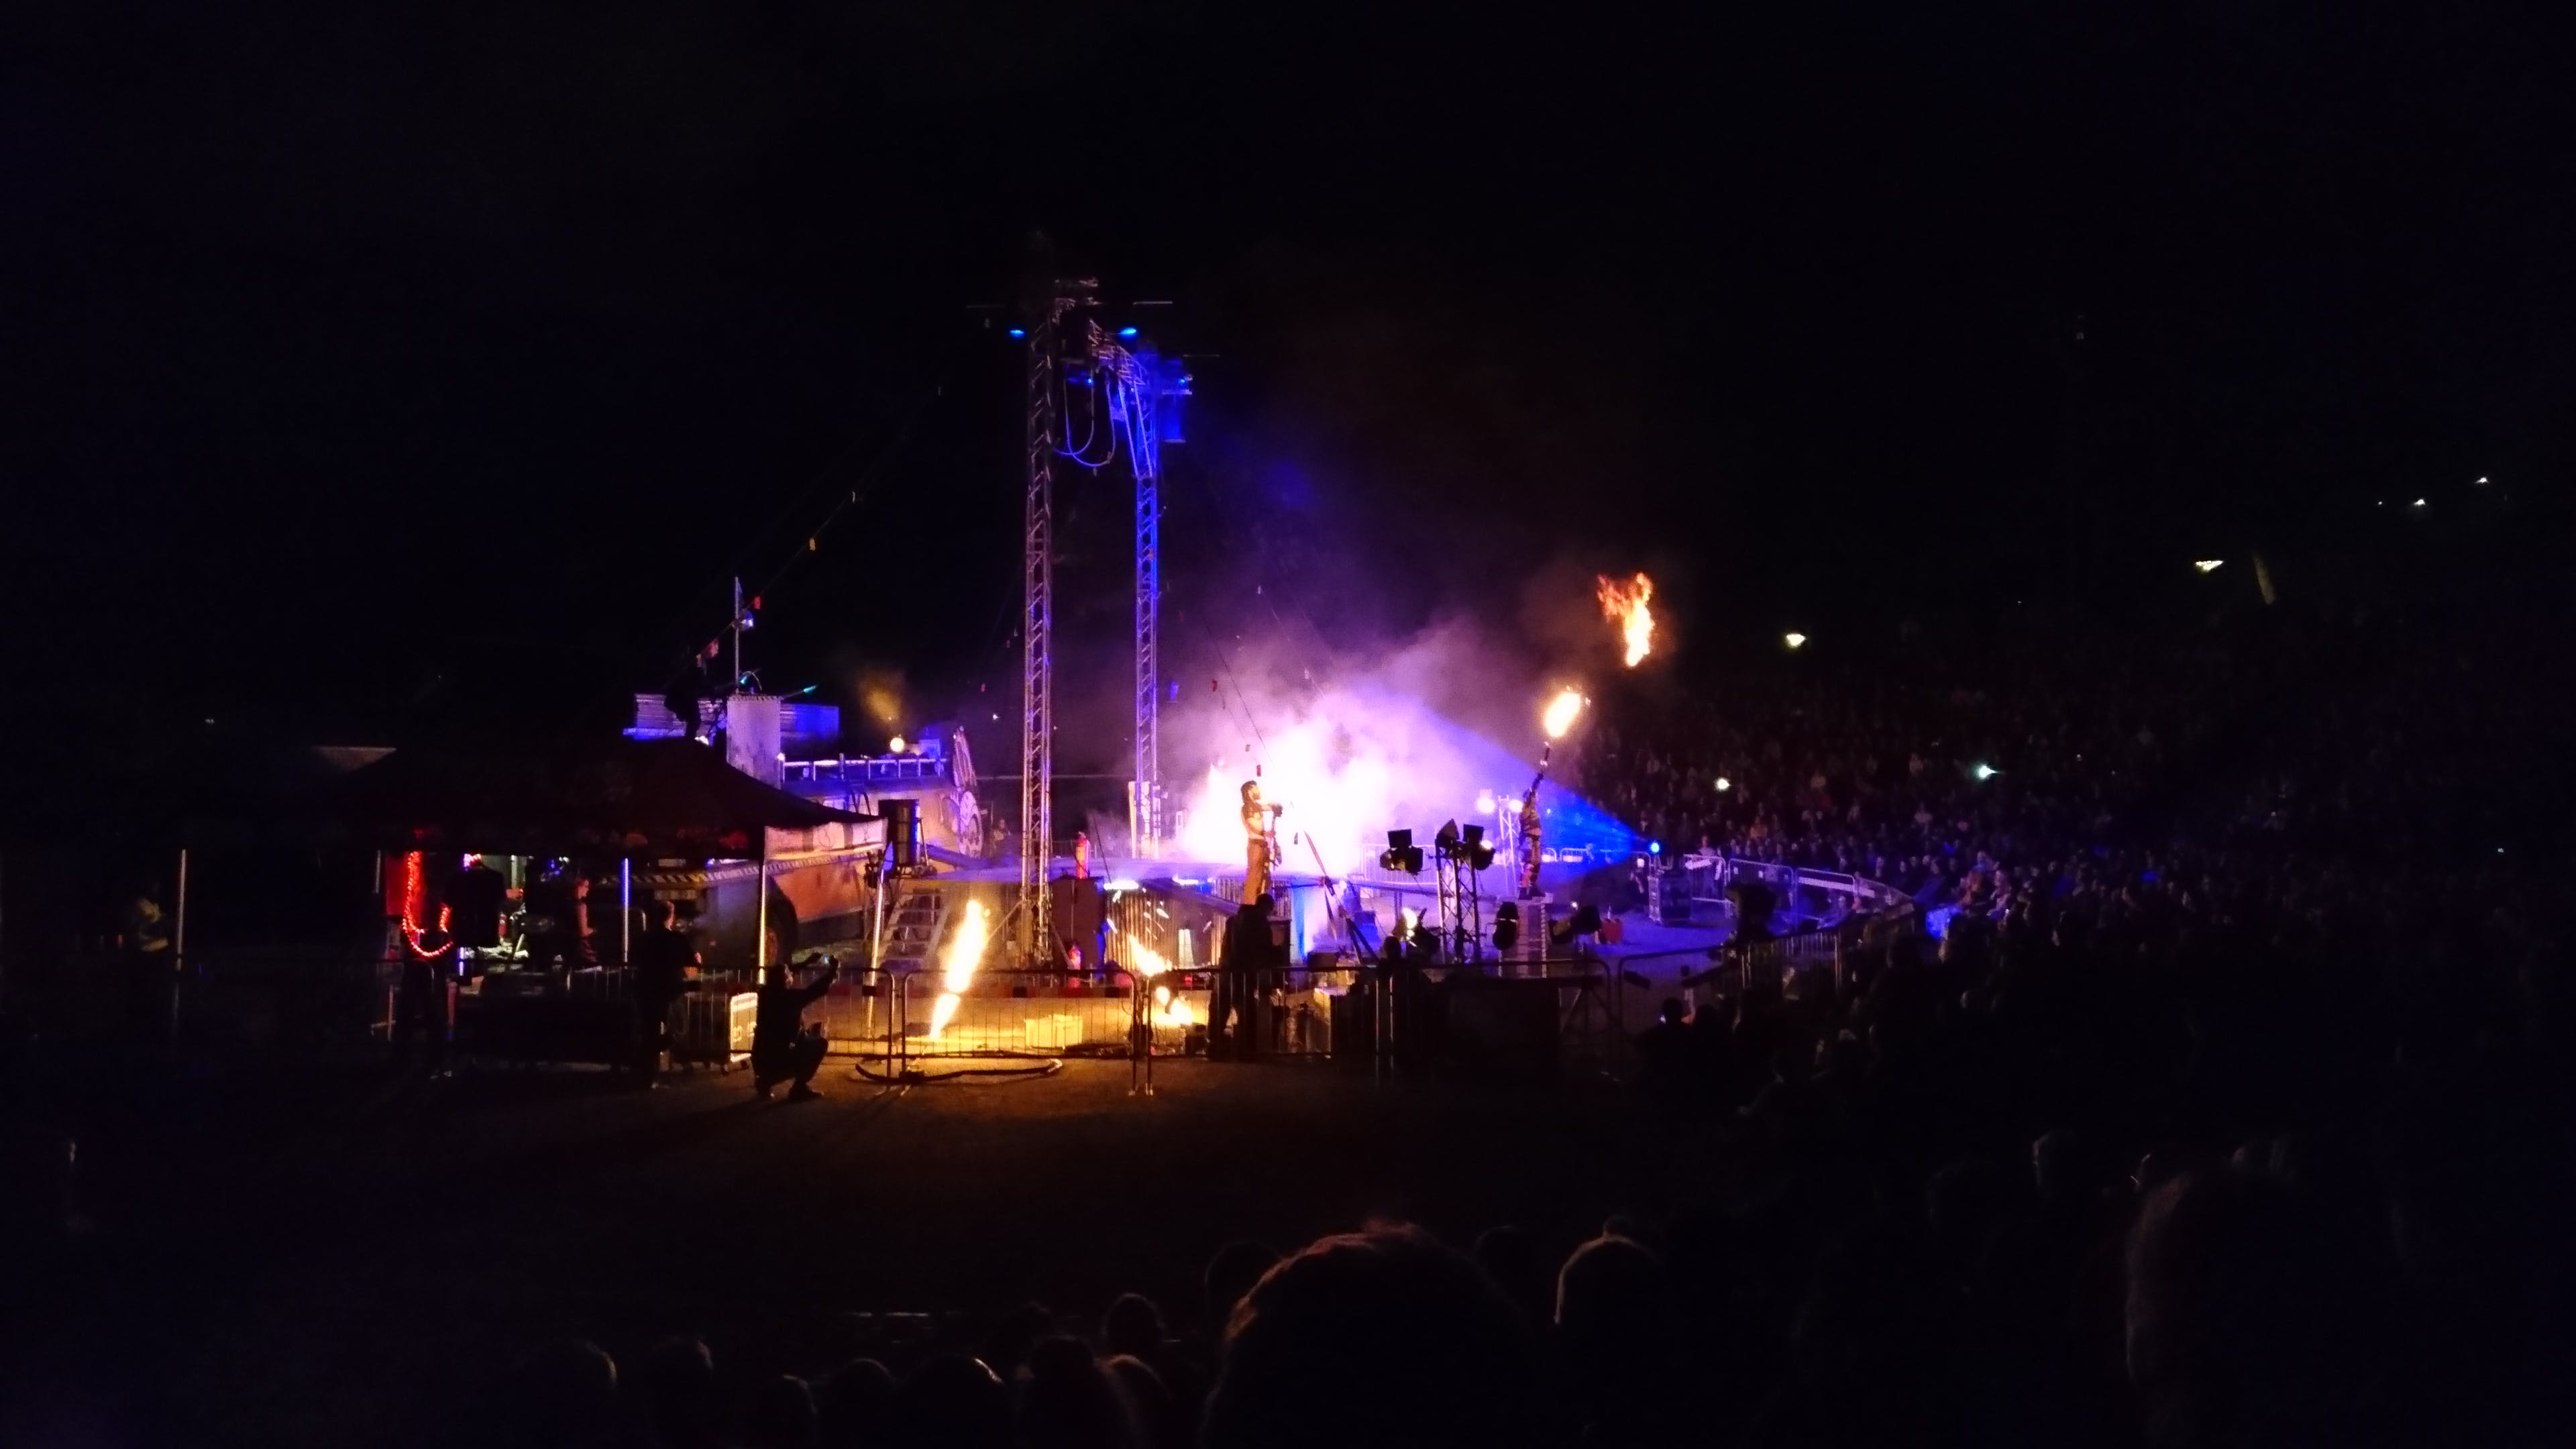 Member of Man on Stage during Nighttime